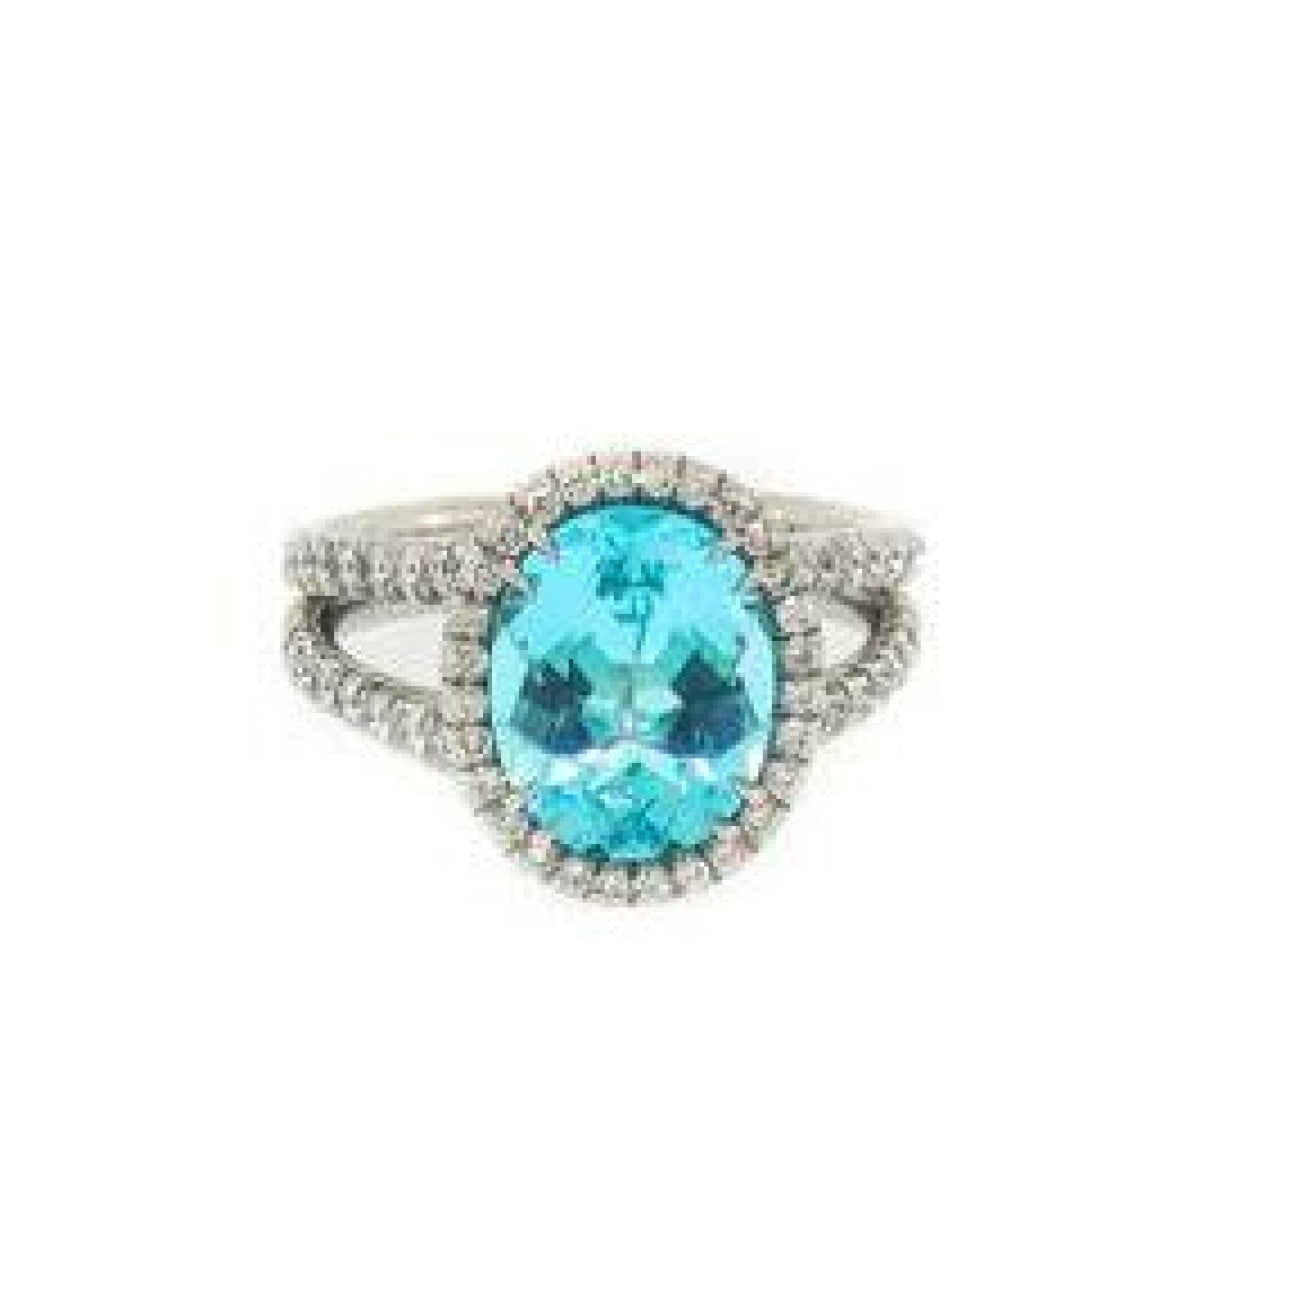 Manfredi Jewels Jewelry - Paraiba Tourmaline and Diamond Platinum Ring | Manfredi Jewels